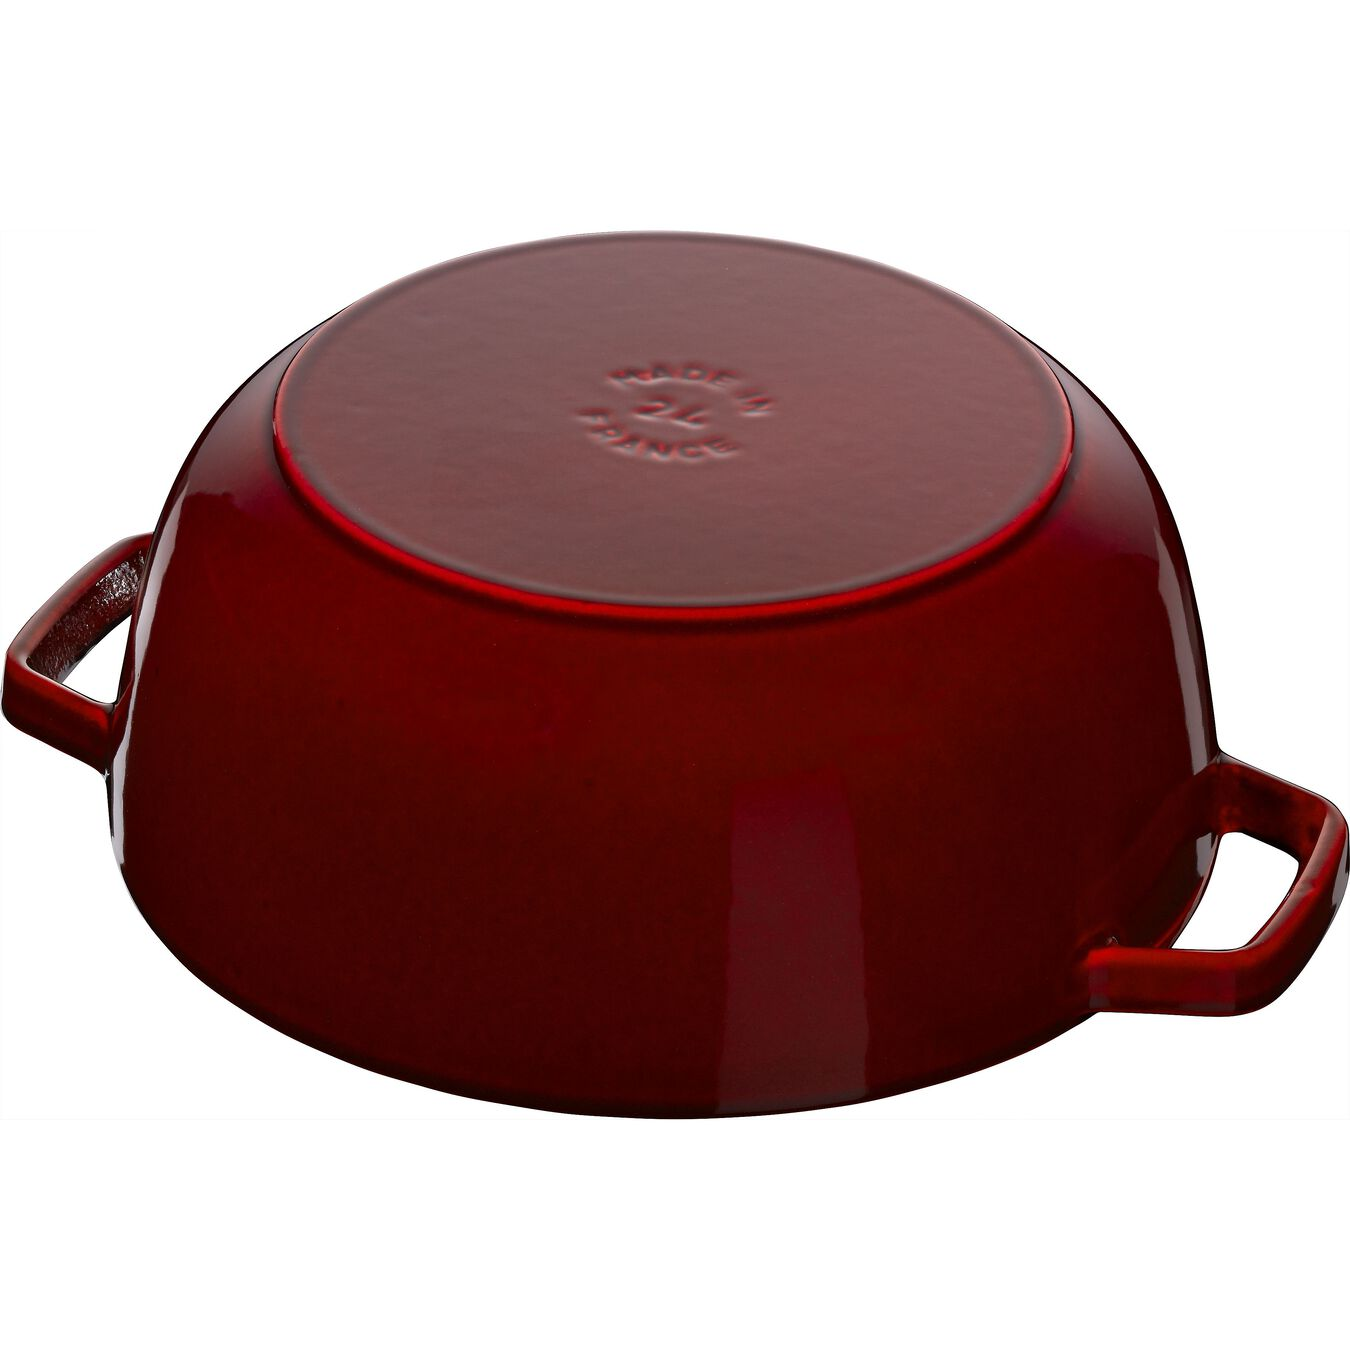 5-qt Essential French Oven with Lilly Lid - Visual Imperfections - Grenadine,,large 4